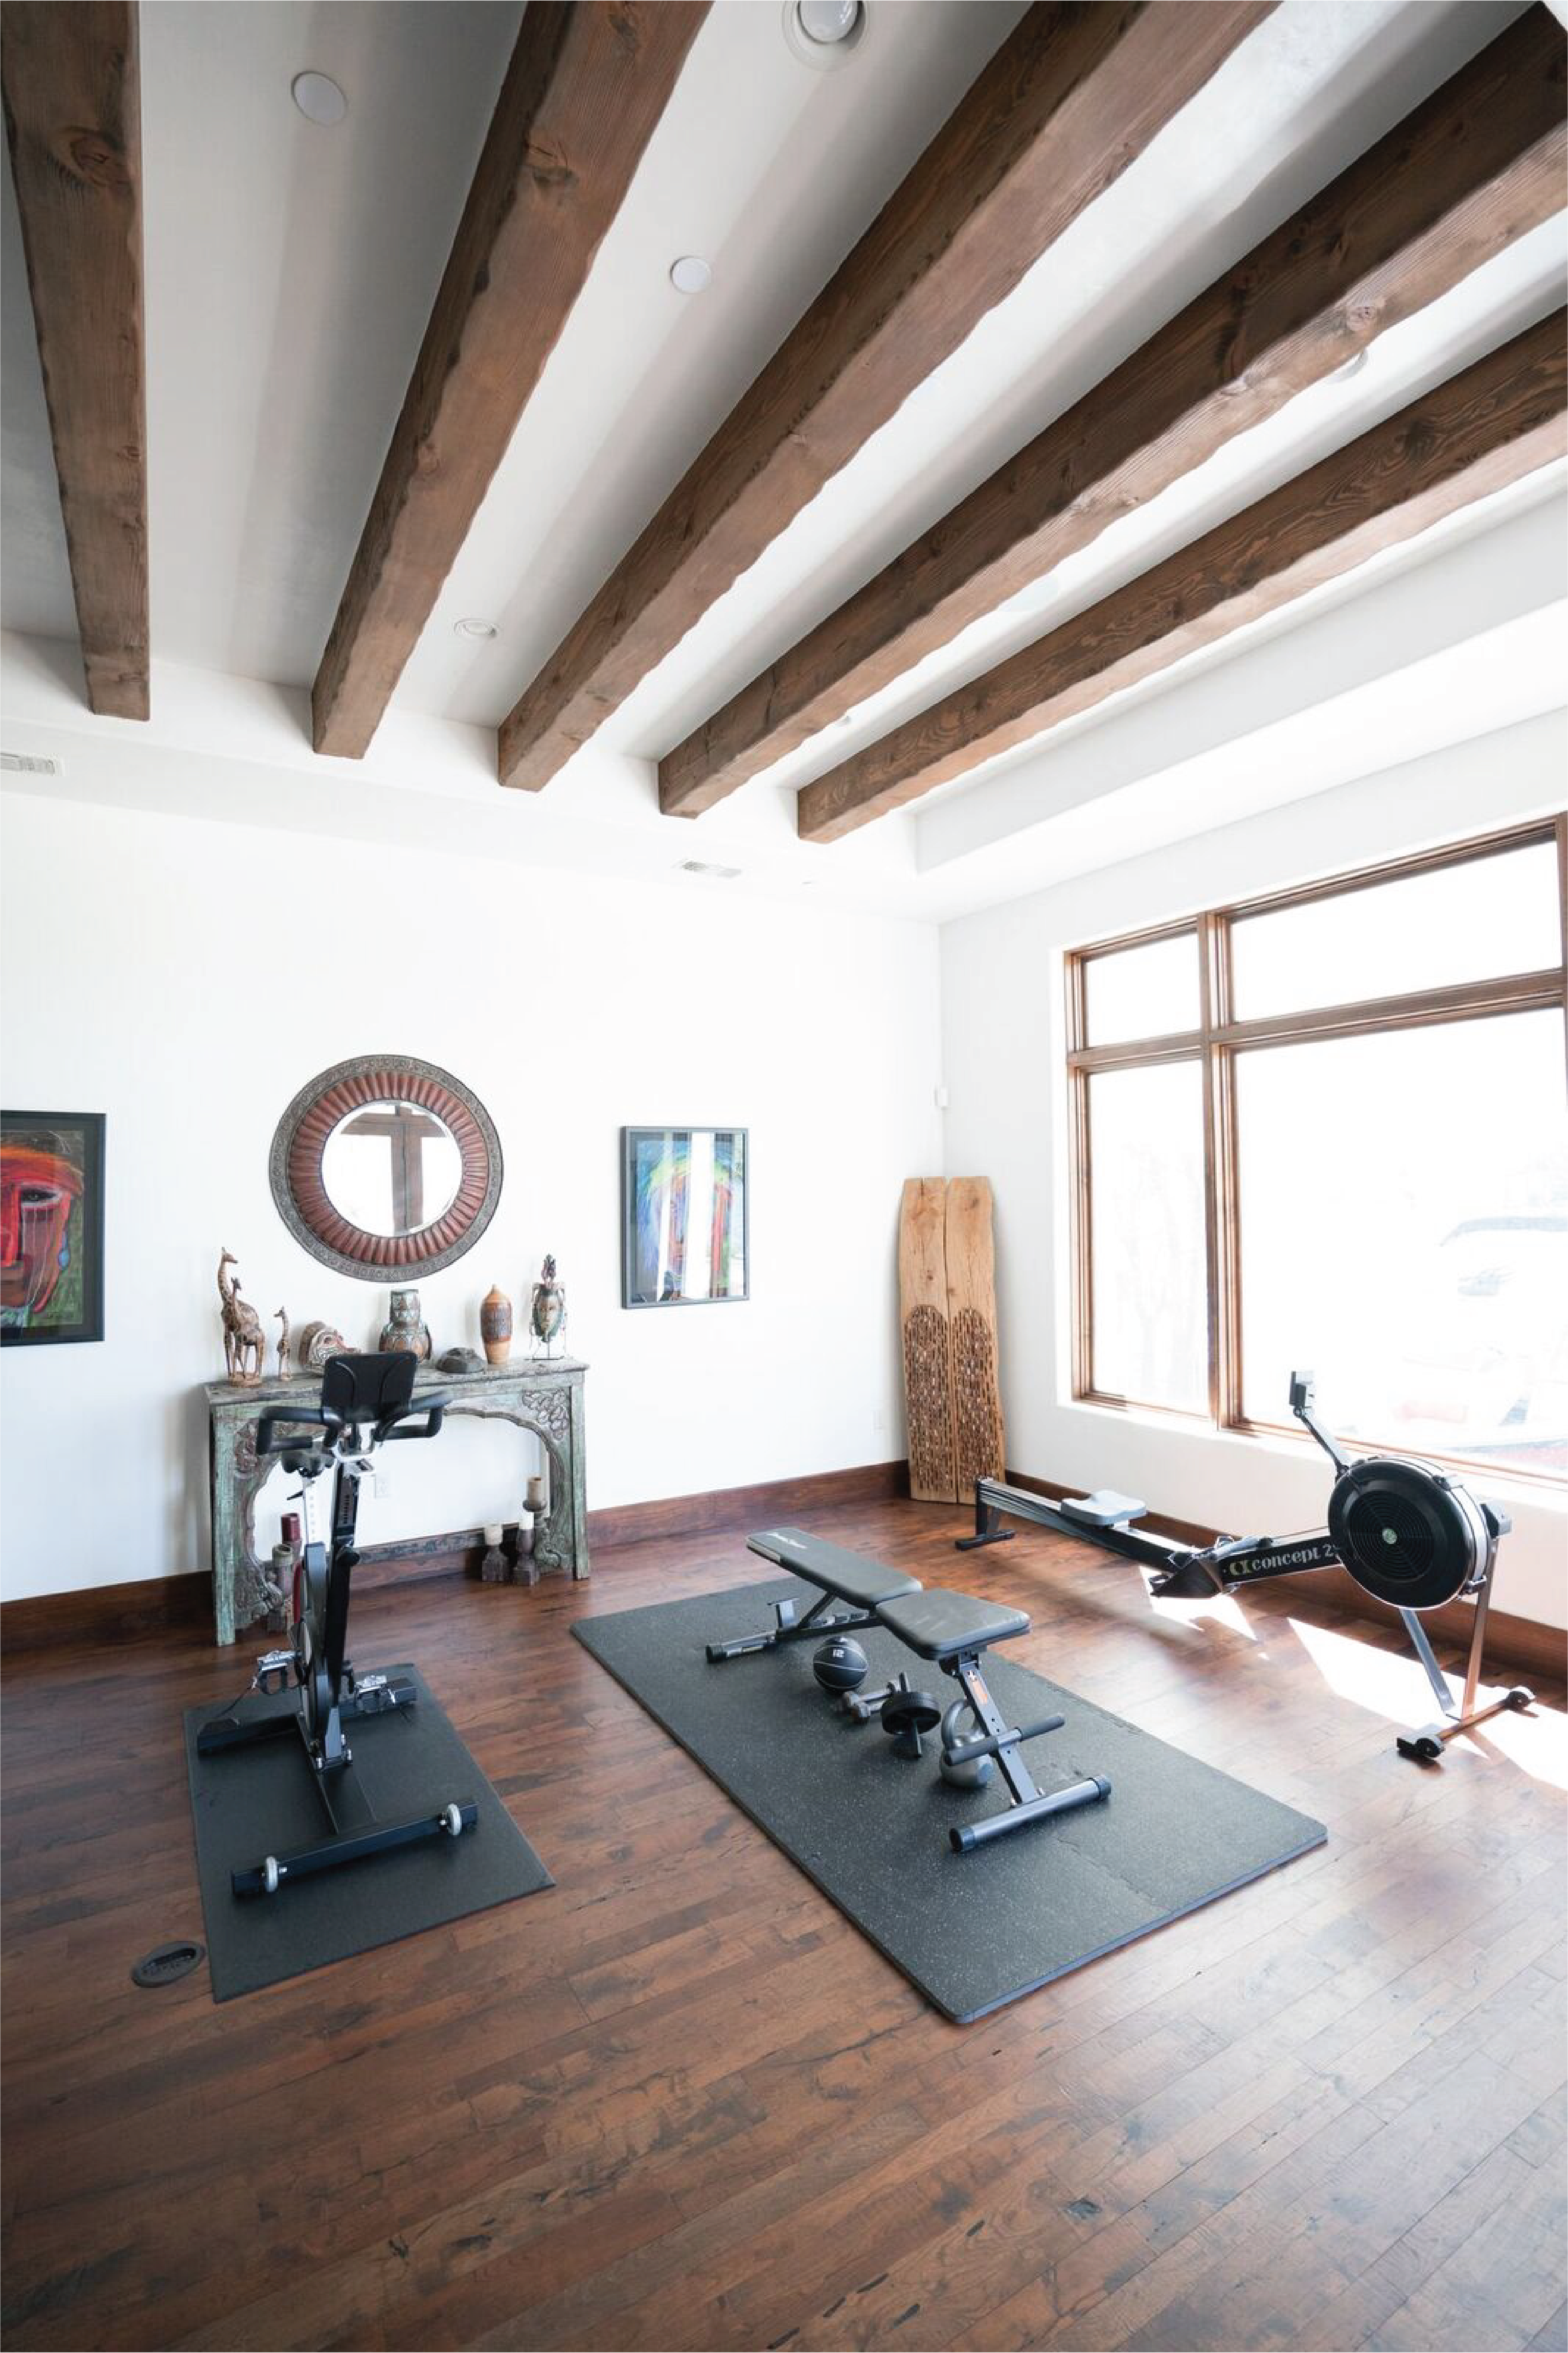 Spanish style home gym rustic ceiling beams mesquite hardwood